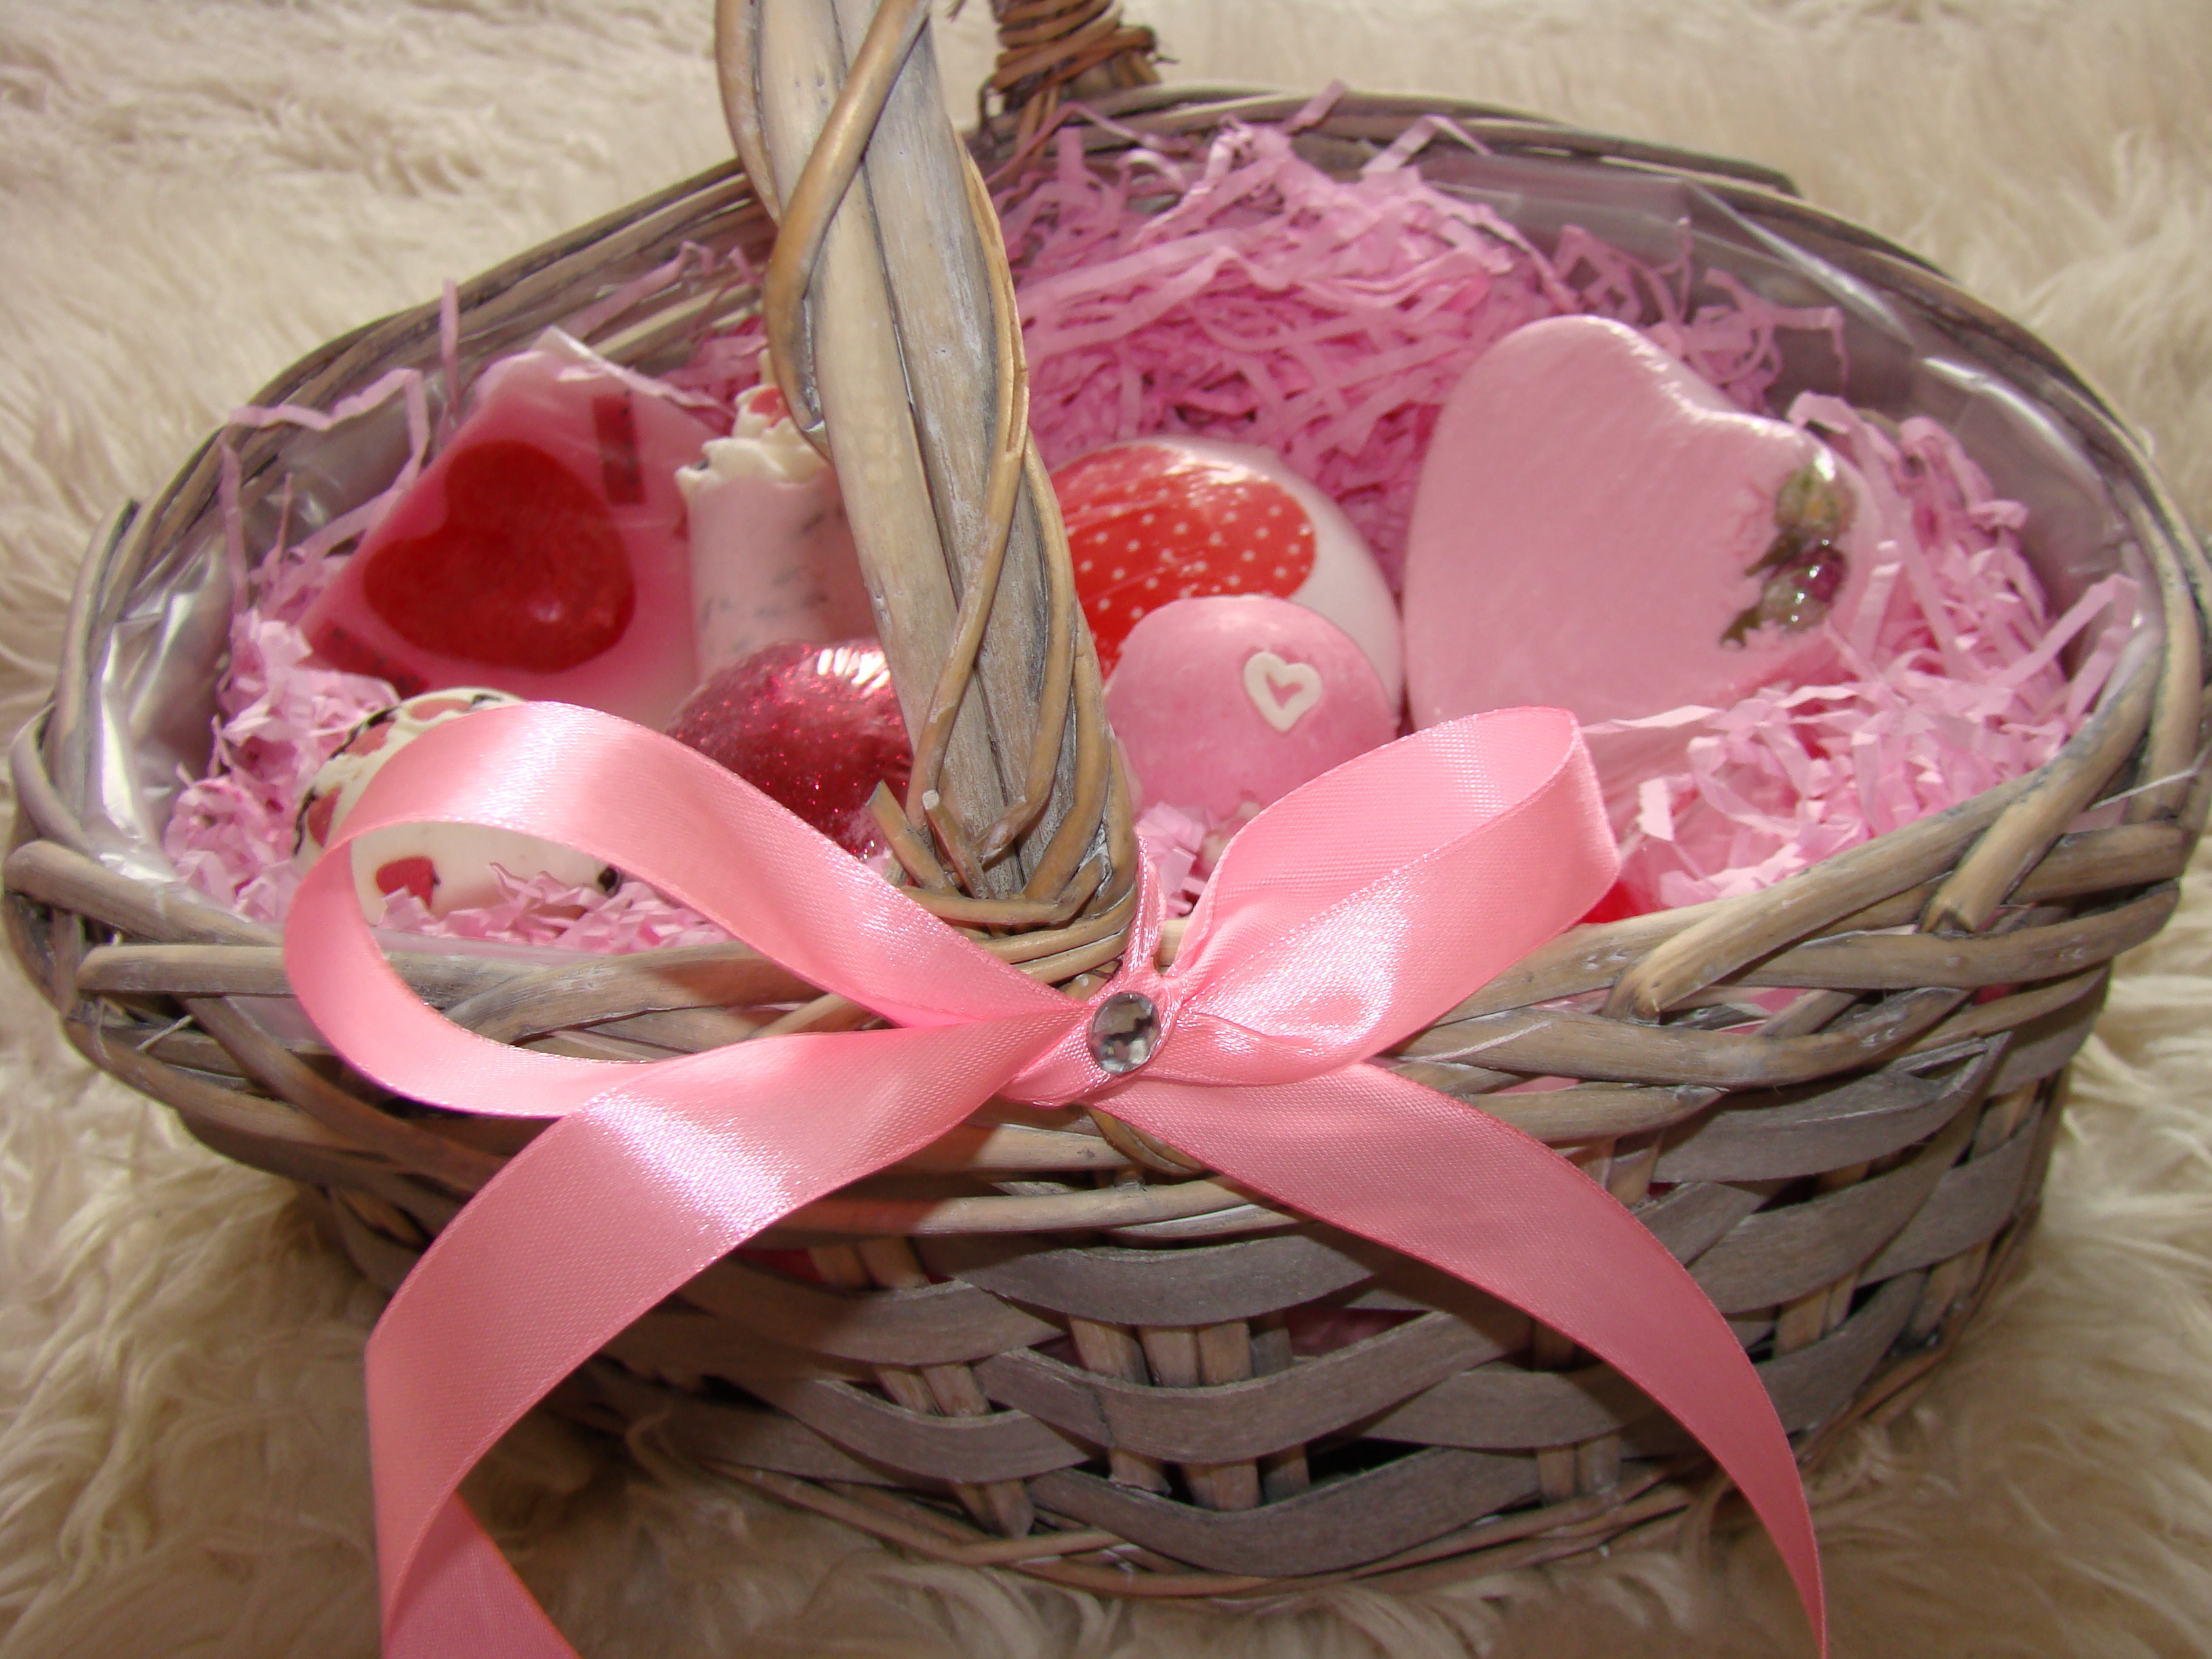 Best ideas about DIY Gift Baskets For Her . Save or Pin Valentine Series DIY Gift Basket for Her Now.